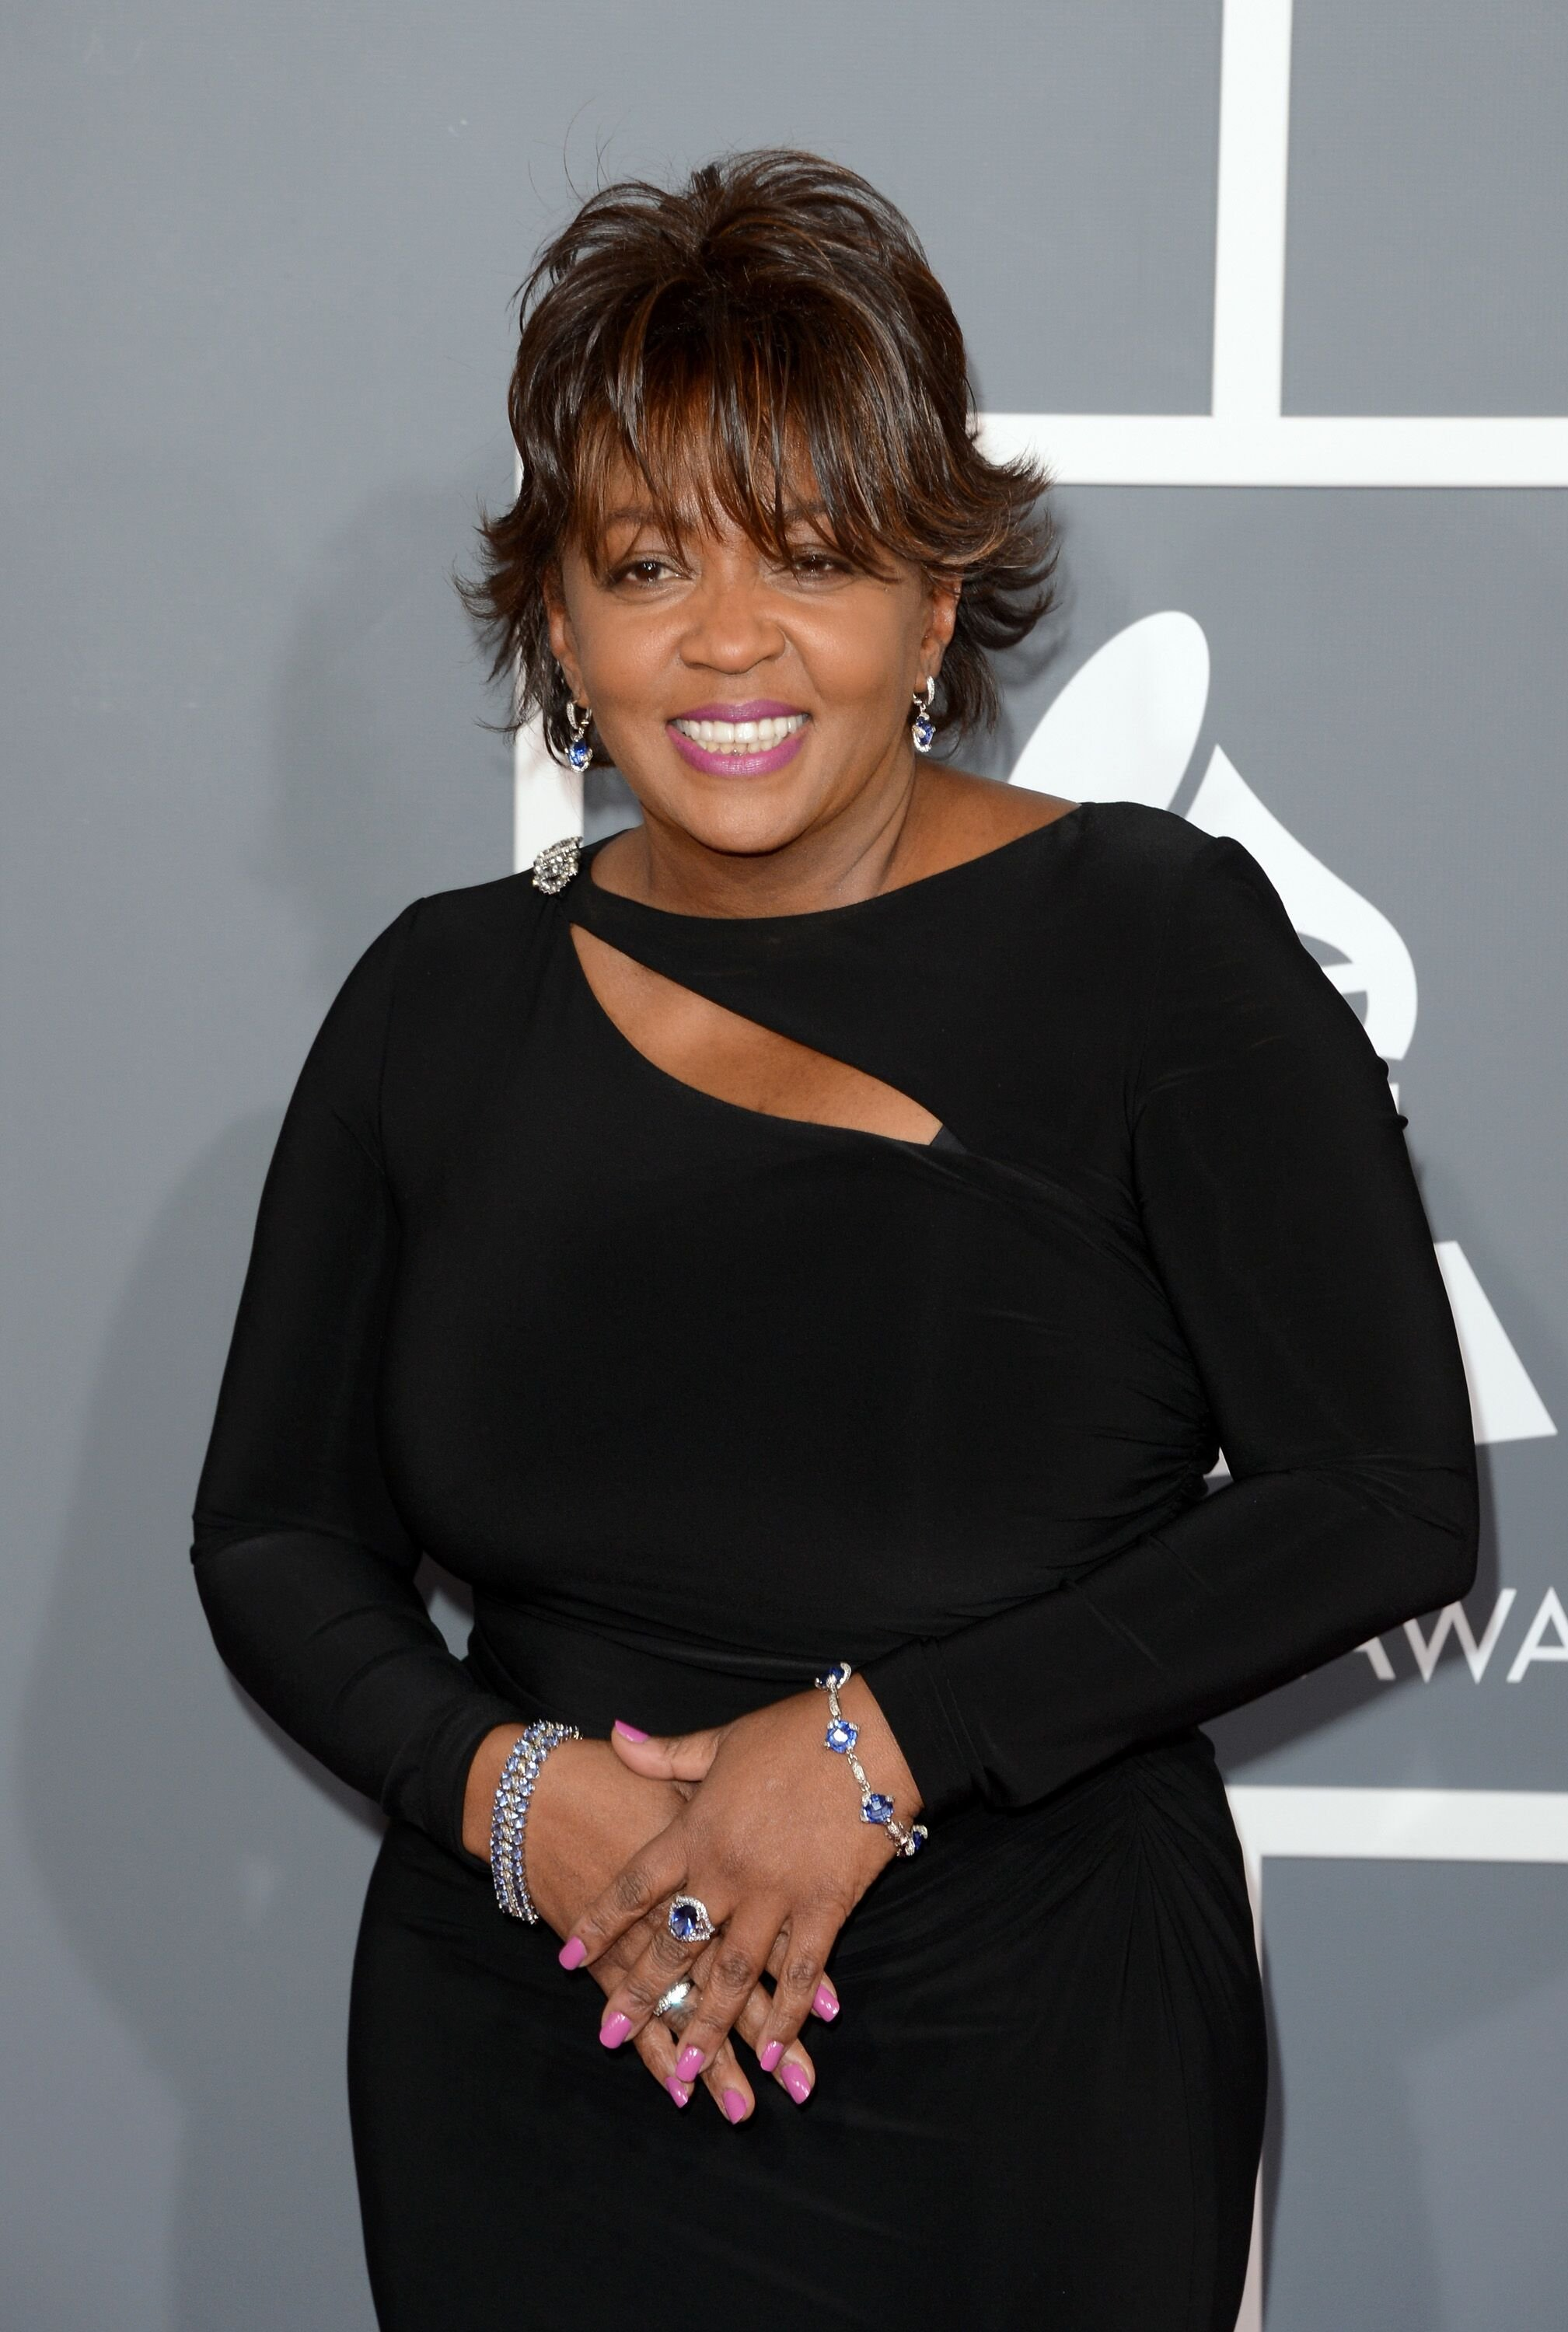 Anita Baker arrives at the 55th Annual GRAMMY Awards at Staples Center | Source: Getty Images